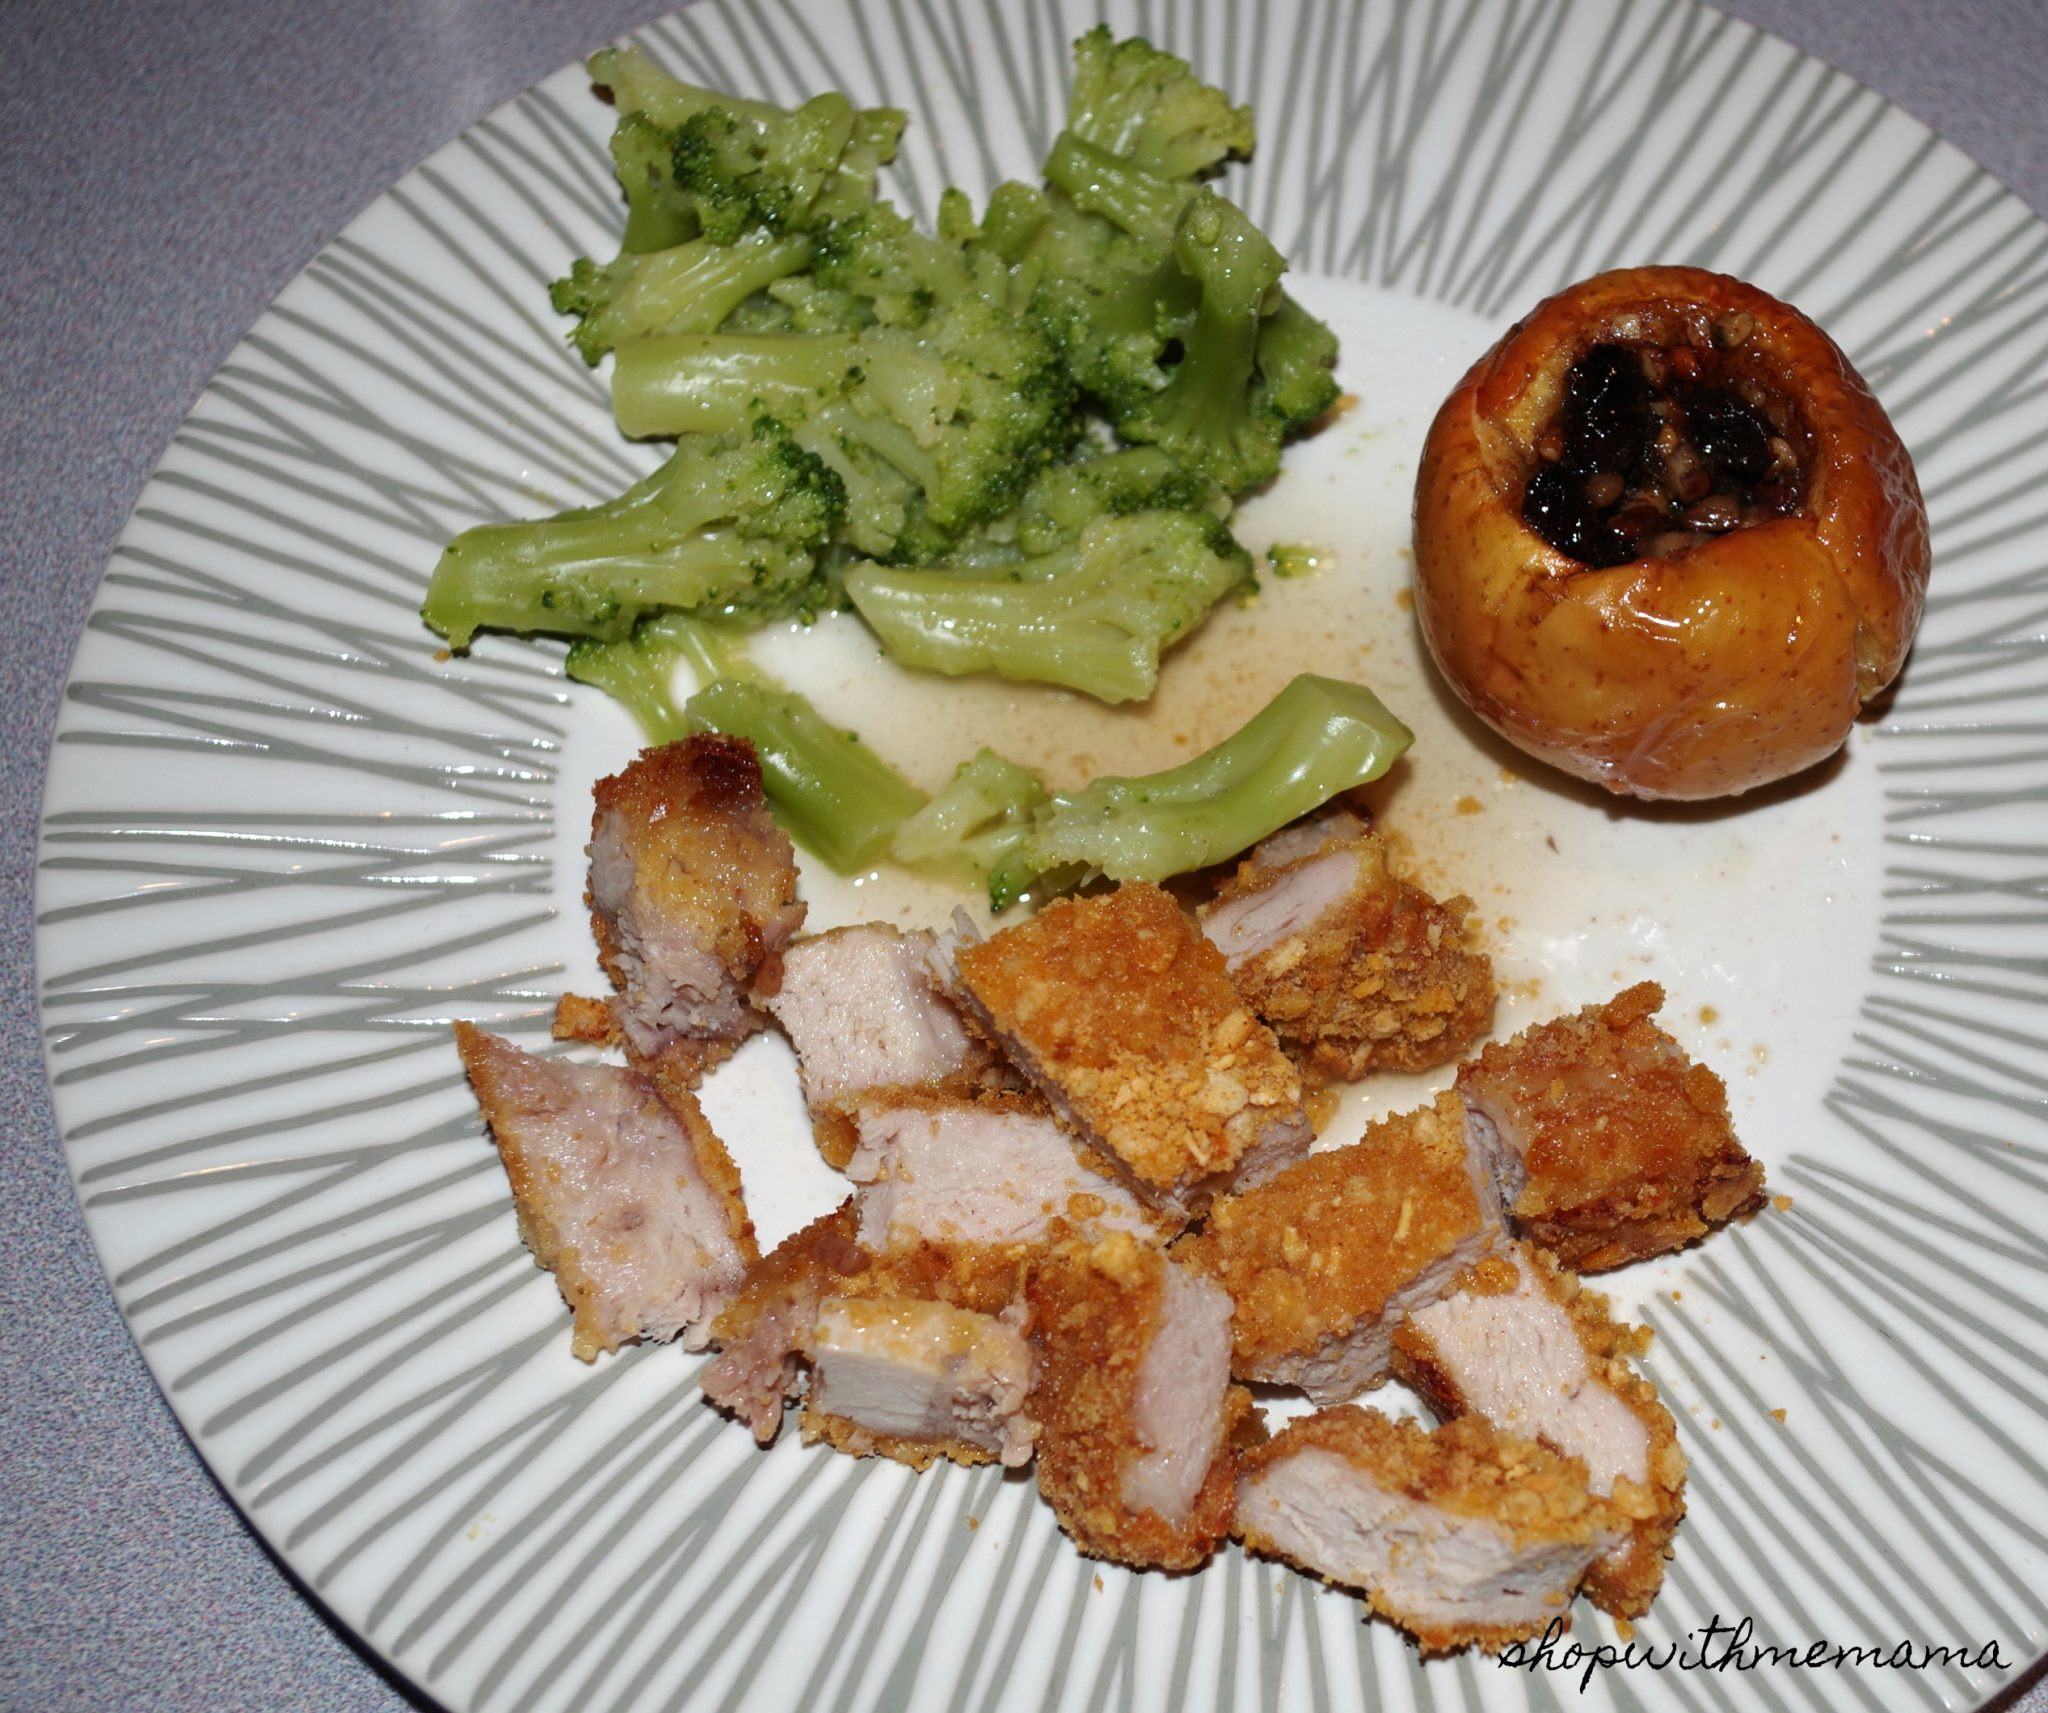 Fried Pork Chops And Stuffed Baked Apples